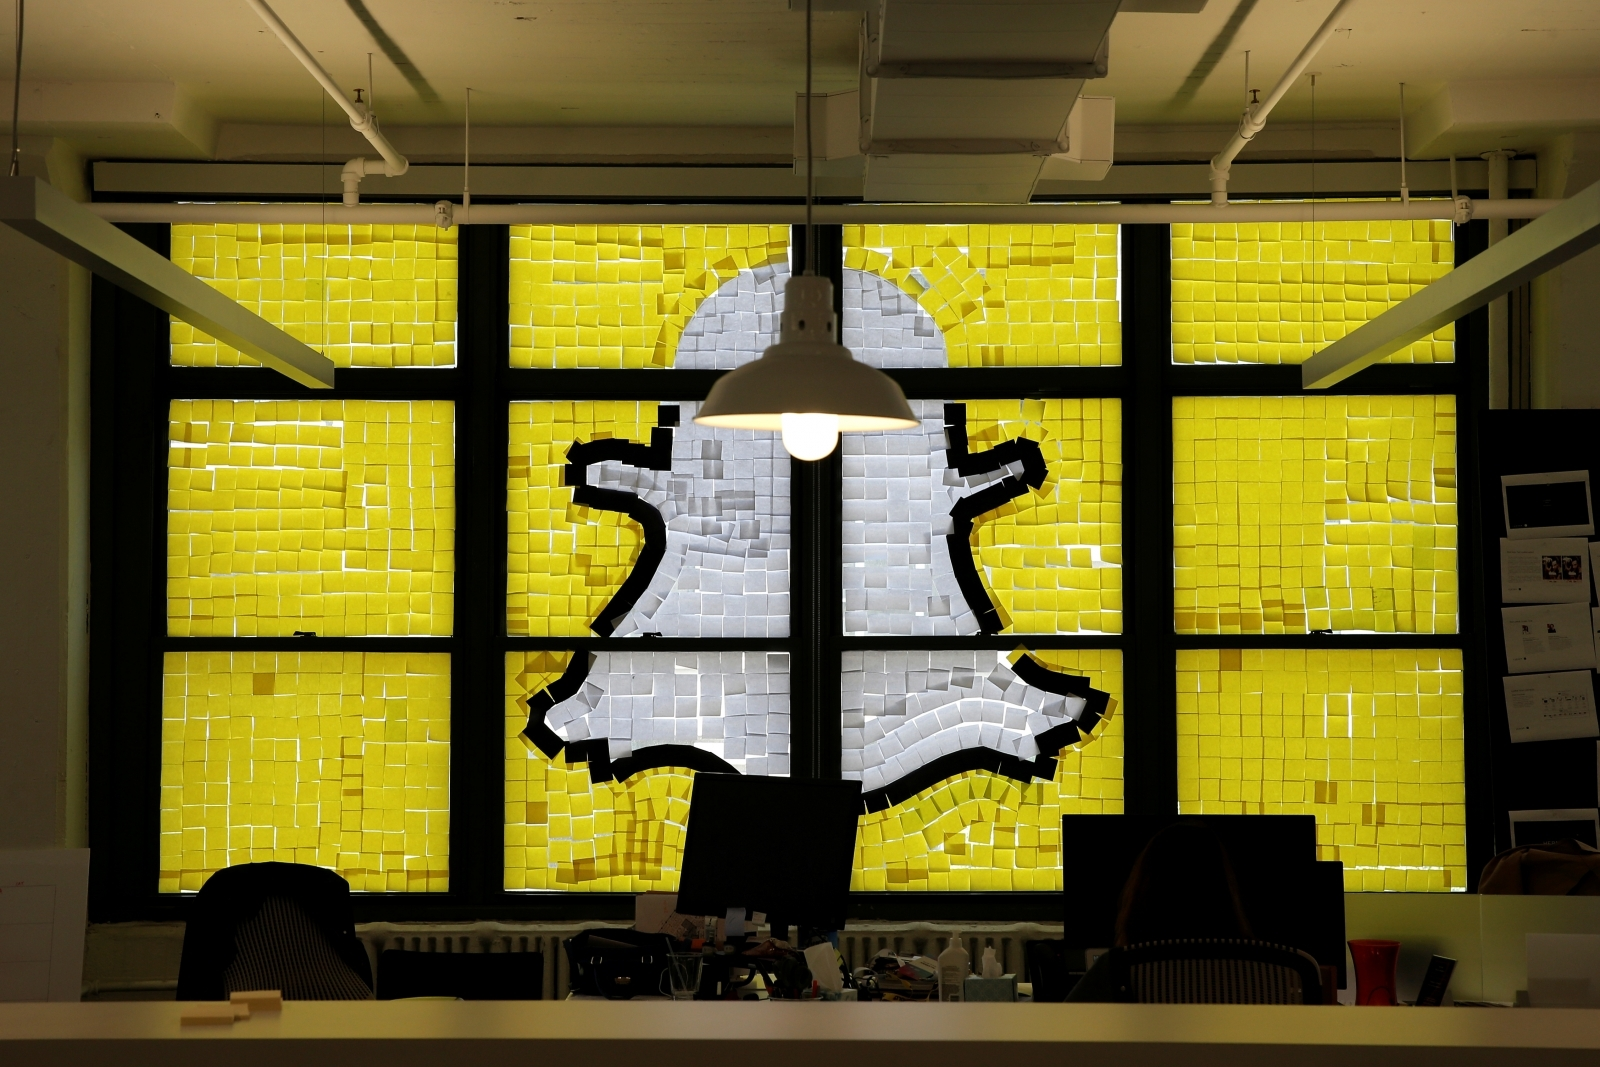 Snapchat takes down Al Jazeera's channel in Saudi Arabia